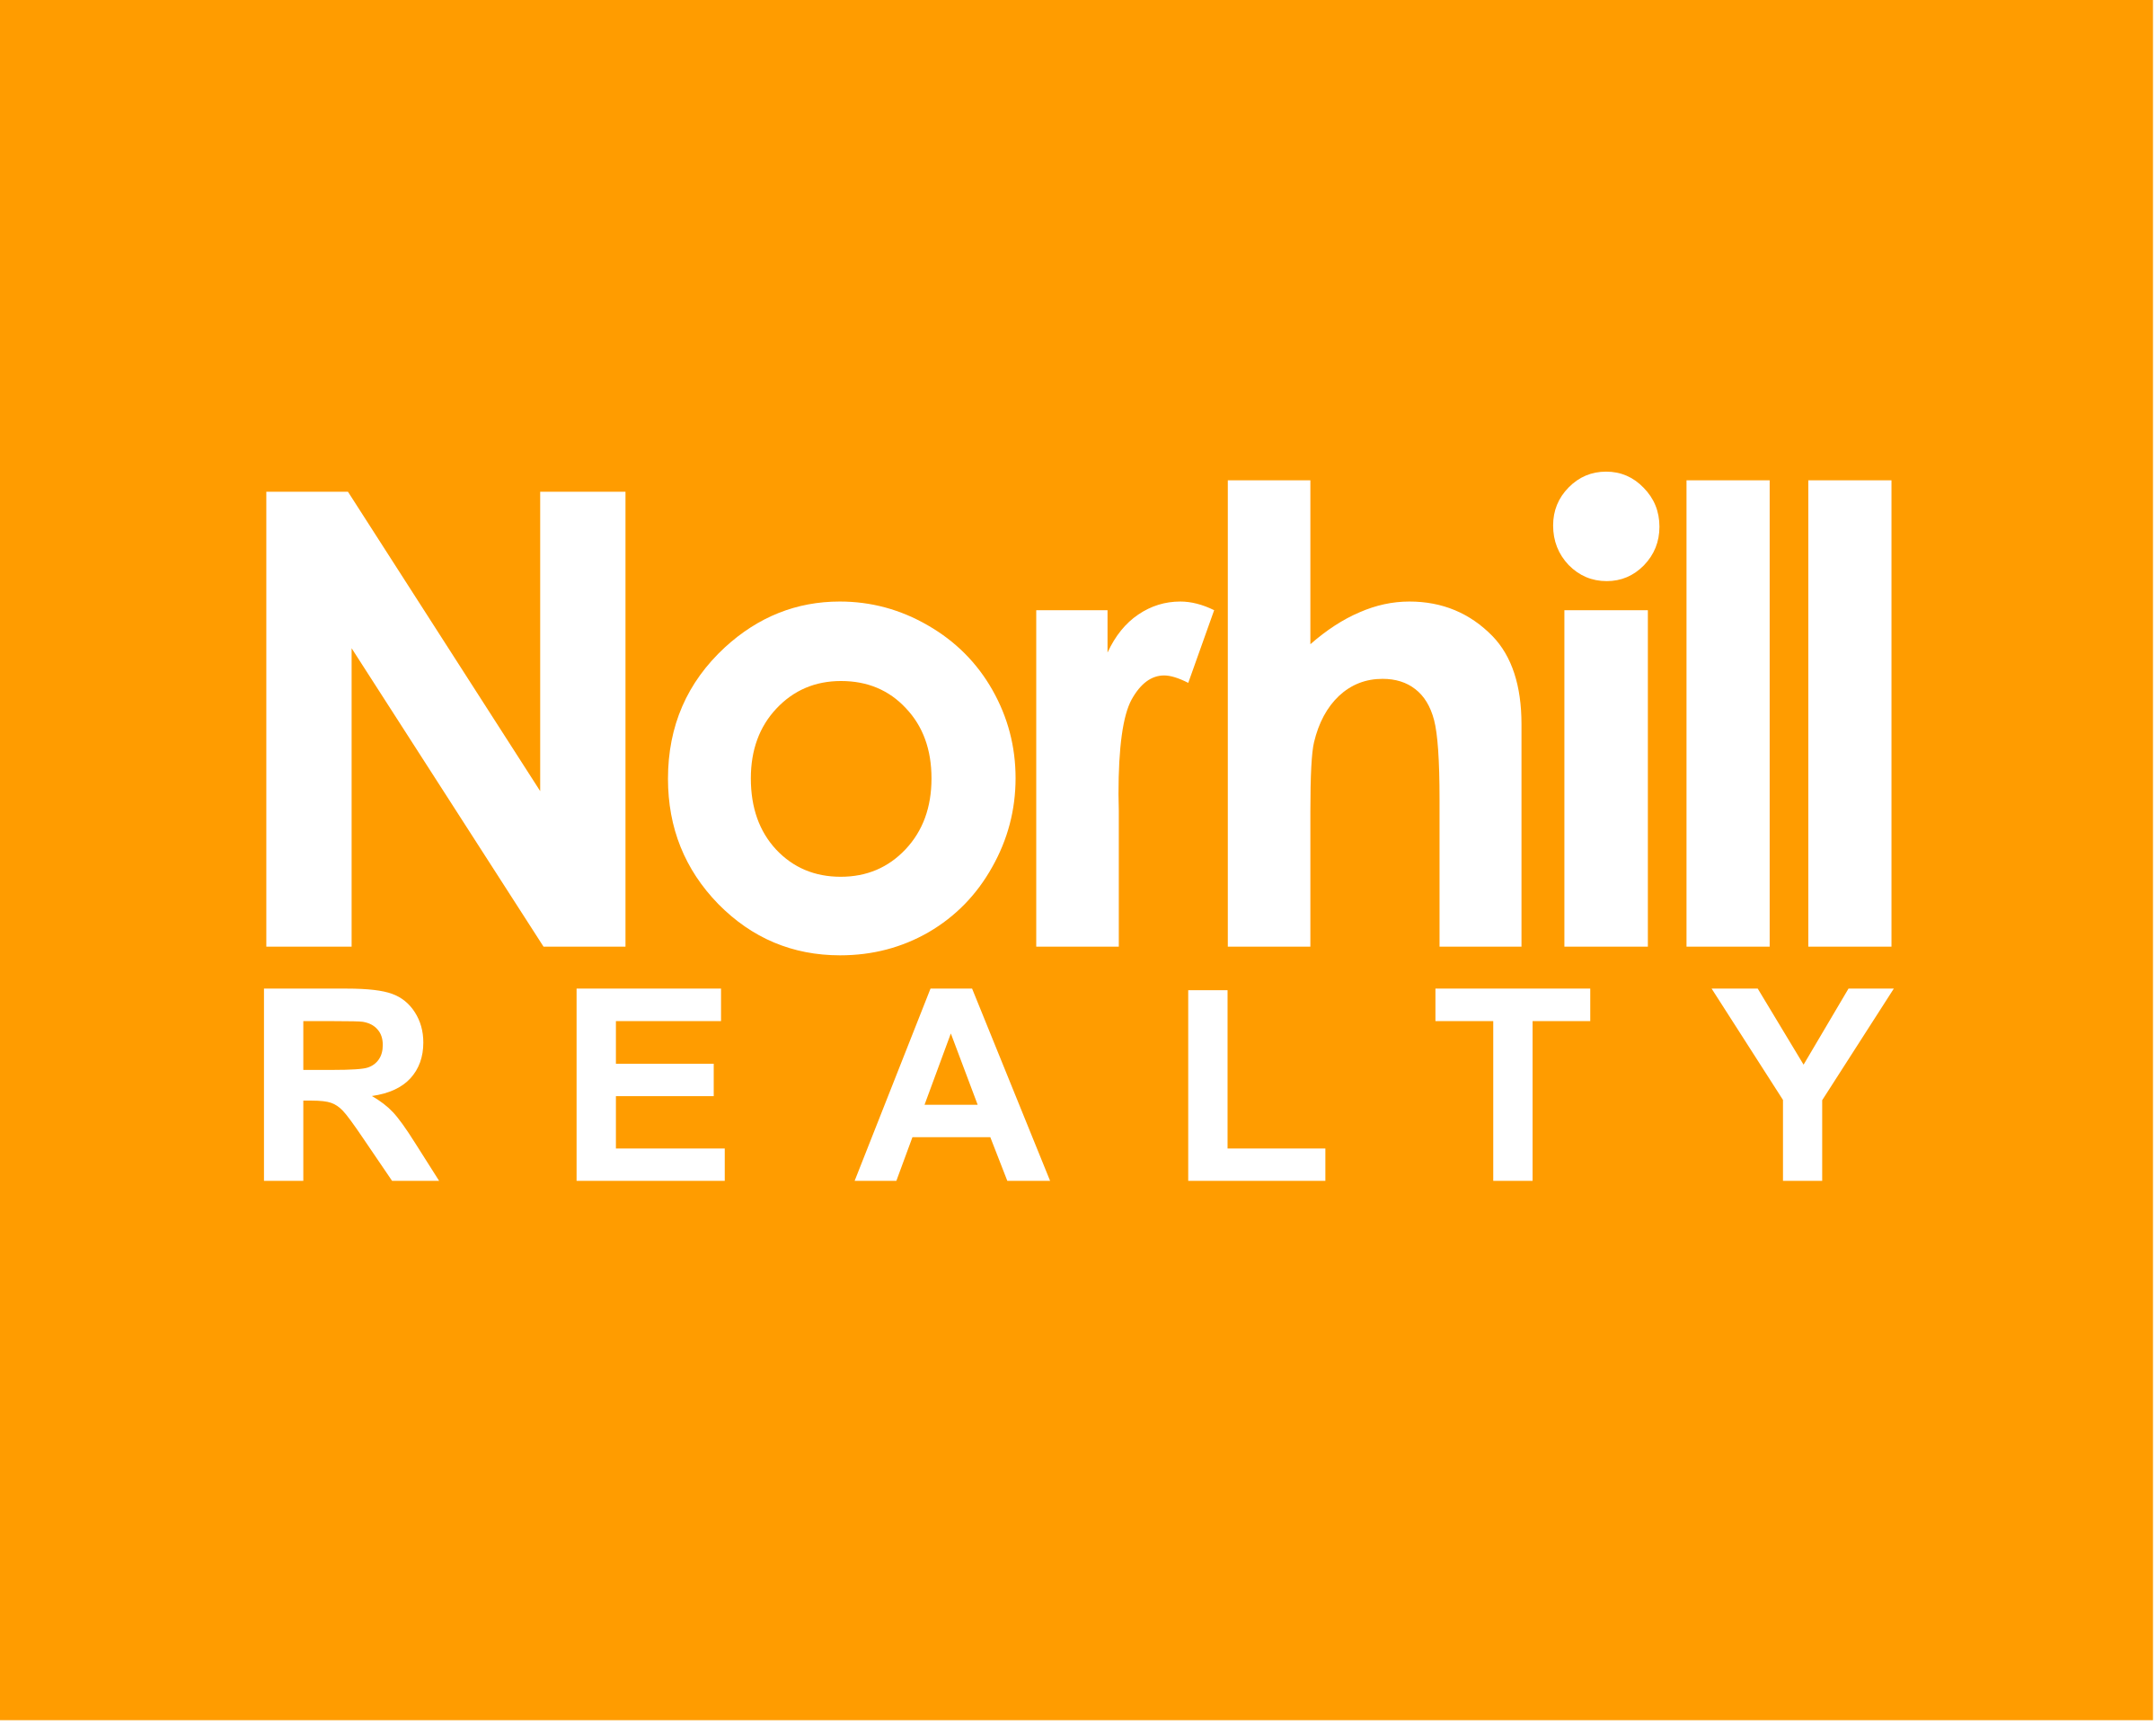 Norhill Realty